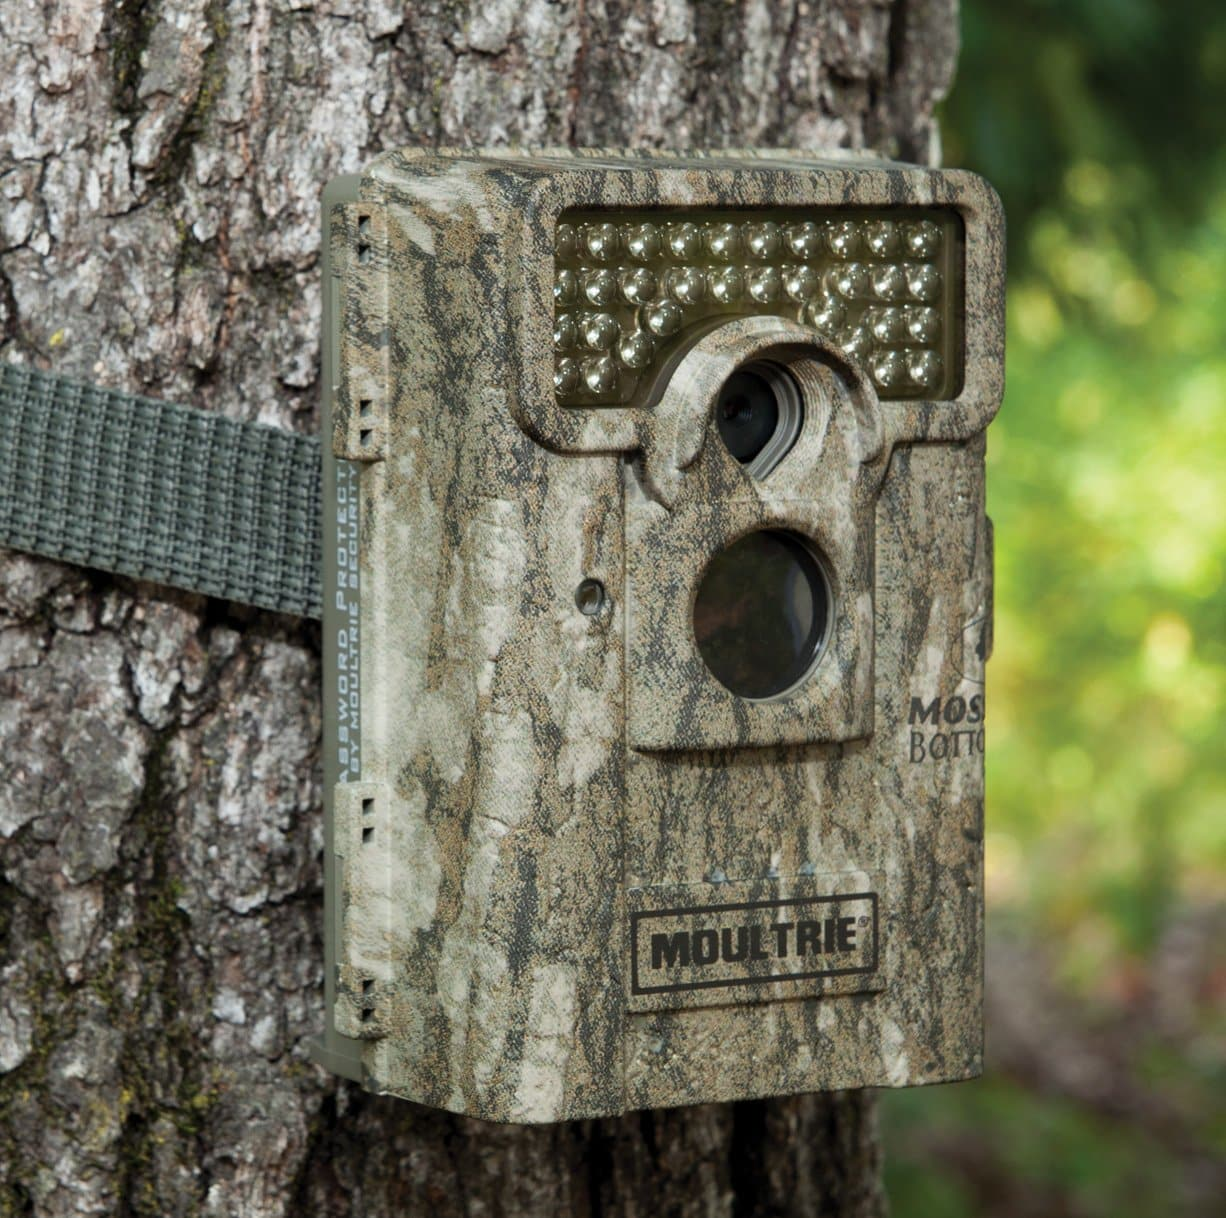 Moultrie M-880 - outside